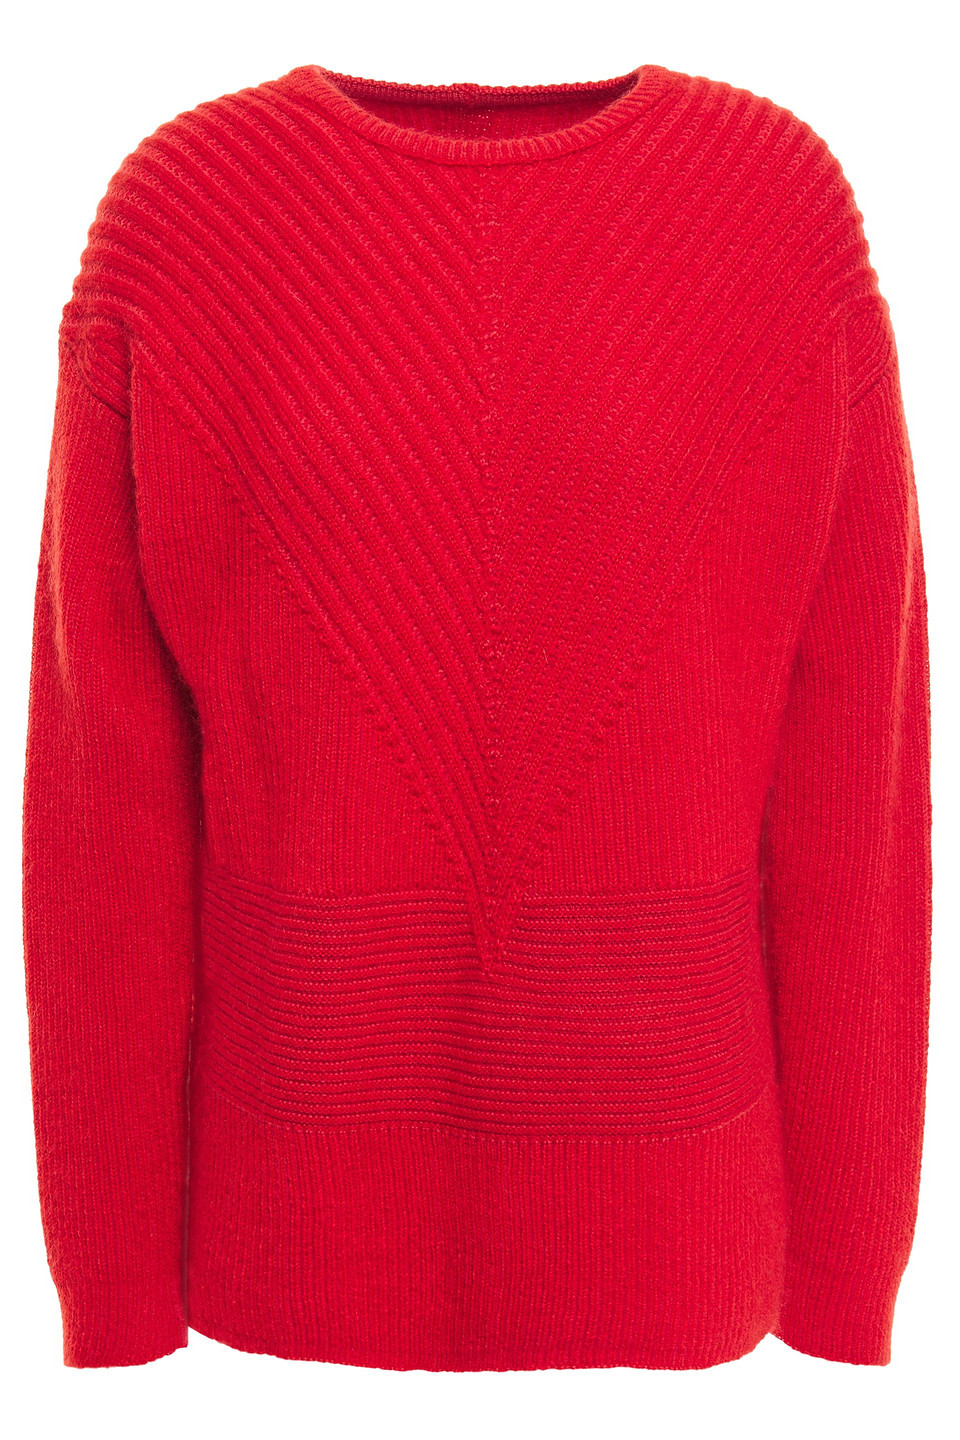 RICK OWENS | Rick Owens Woman Ribbed Wool-blend Sweater Red | Clouty